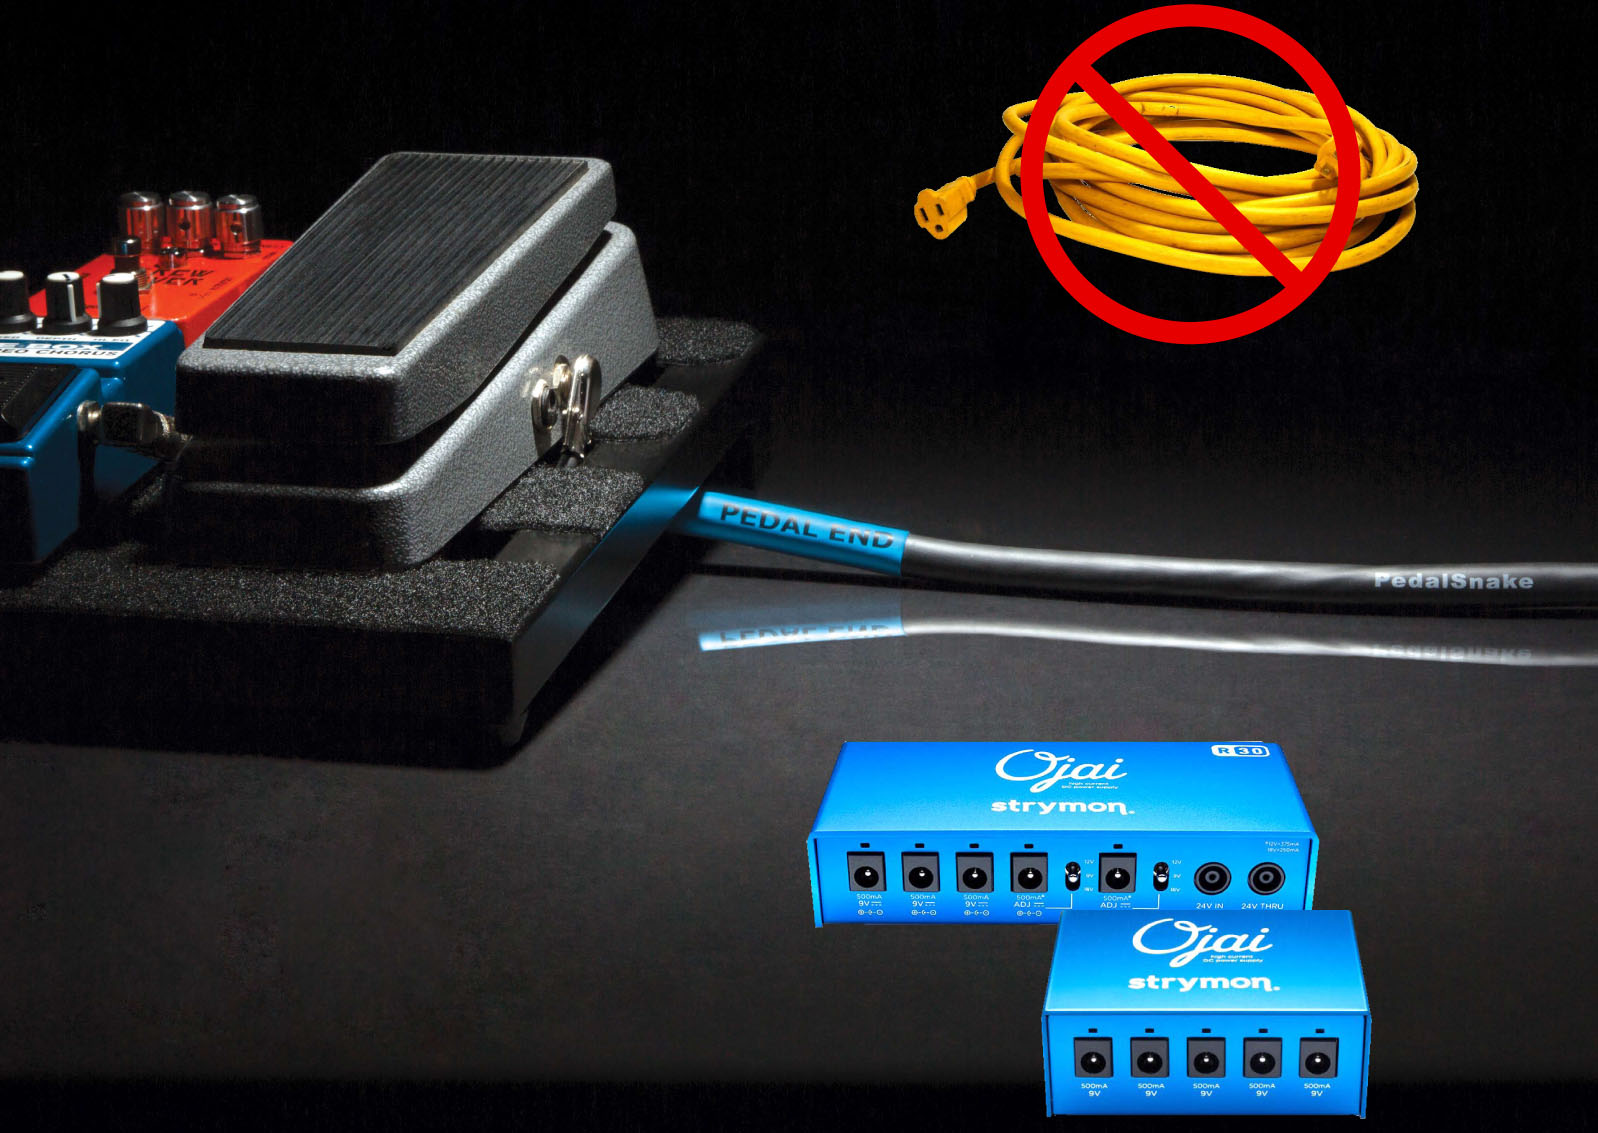 Pedalsnake Accessories Ac Power Cord Wiring The Easiest Quietest Smartest Way To Pedals With No